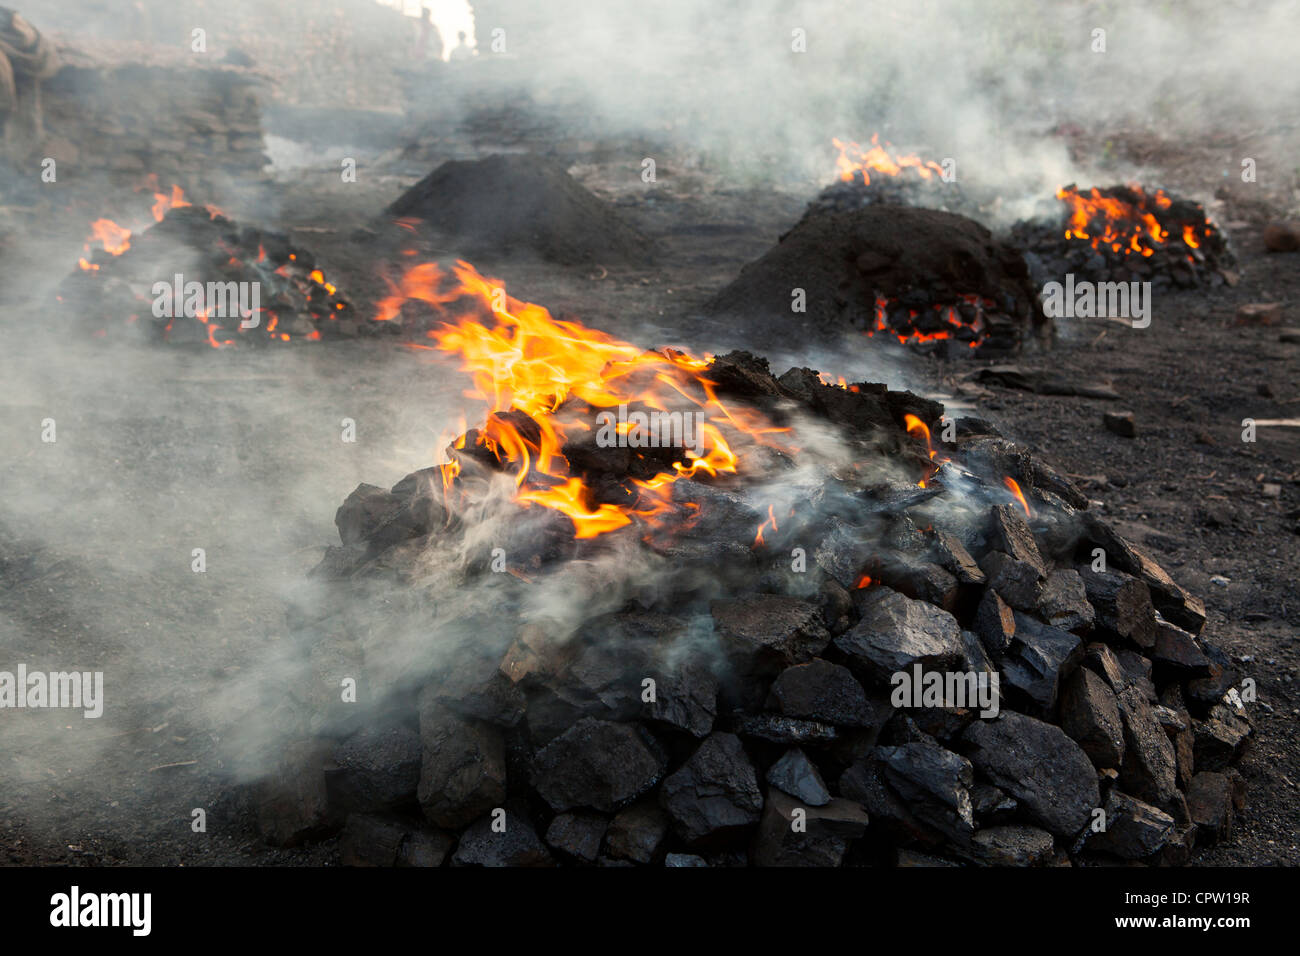 Per-burn( for remove small and toxic gas) for prepare sale to market, Jharia, Dhanbad, Jharkhand, India - Stock Image